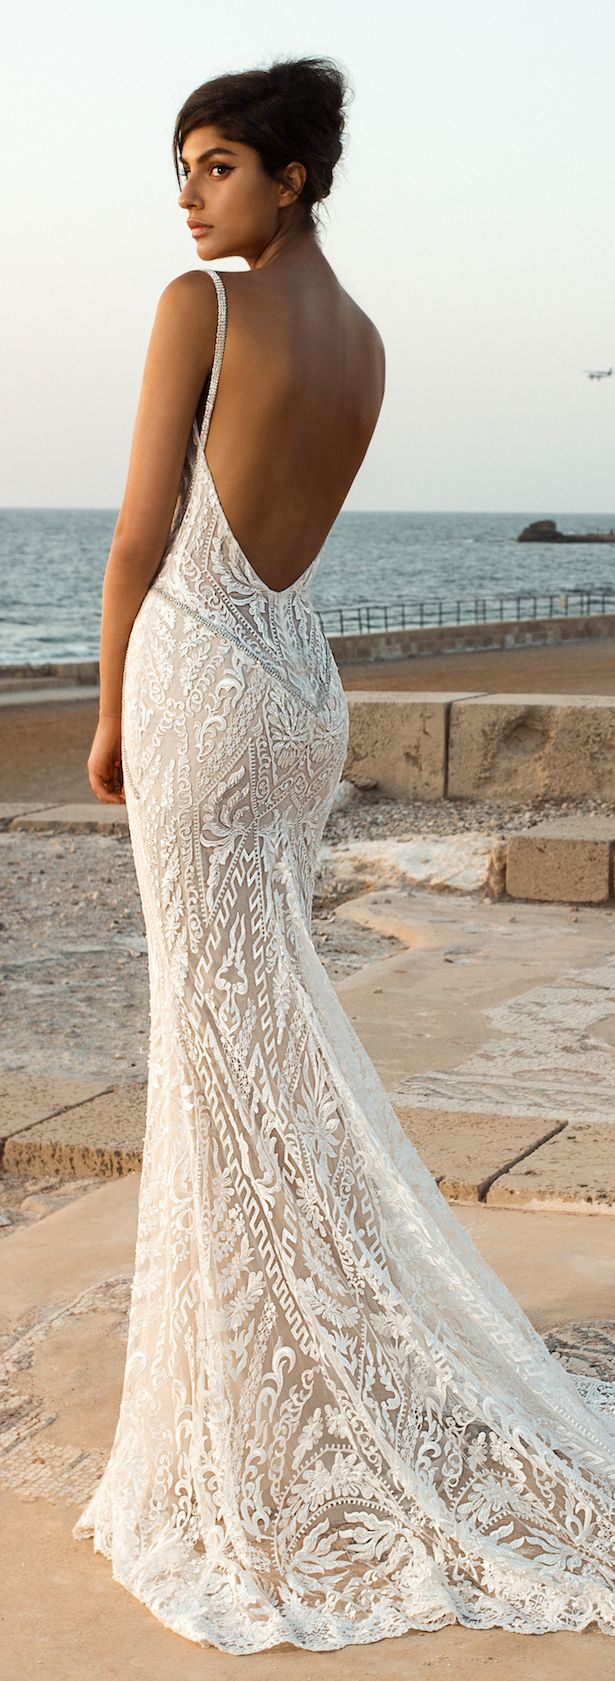 Designer beach wedding dresses  GALA by Galia Lahav Collection NO III Wedding Dresses  Pinterest